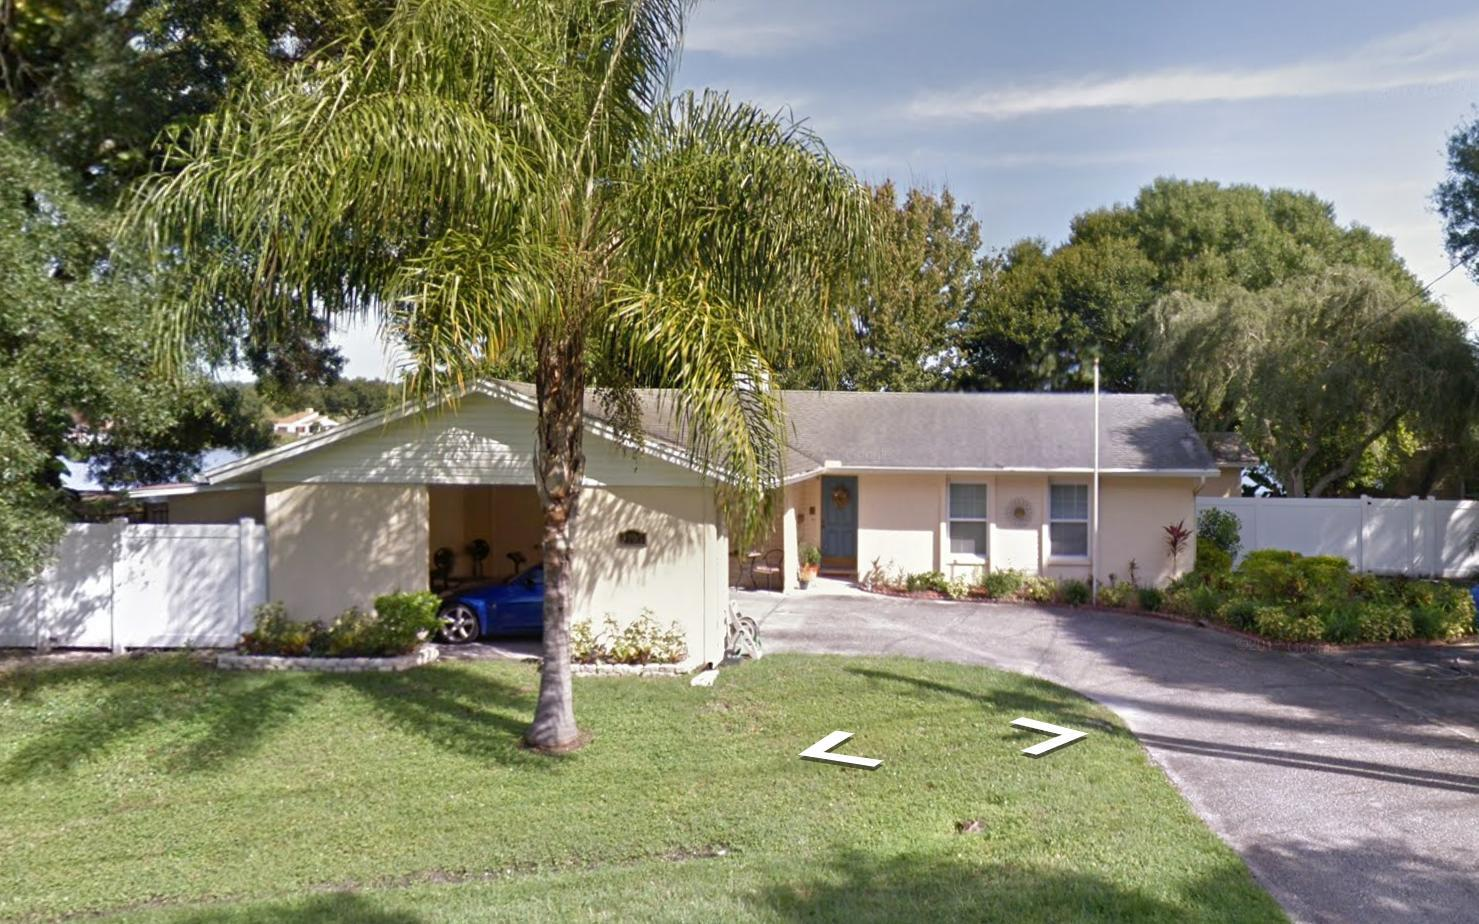 3207 w sitka st for rent tampa fl trulia